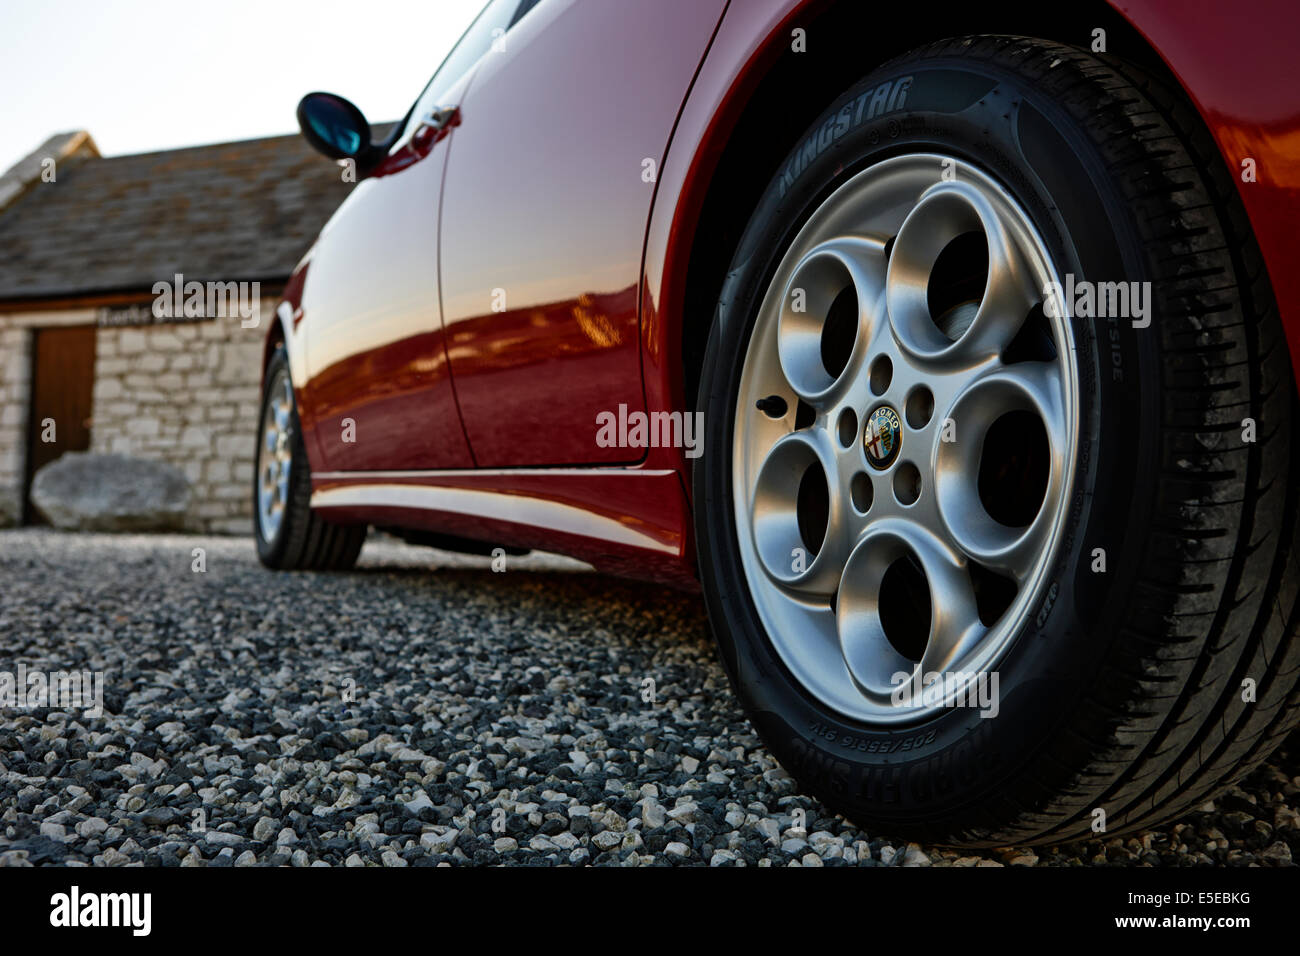 alloy wheels and new tyres on an Alfa Romeo 156 - Stock Image